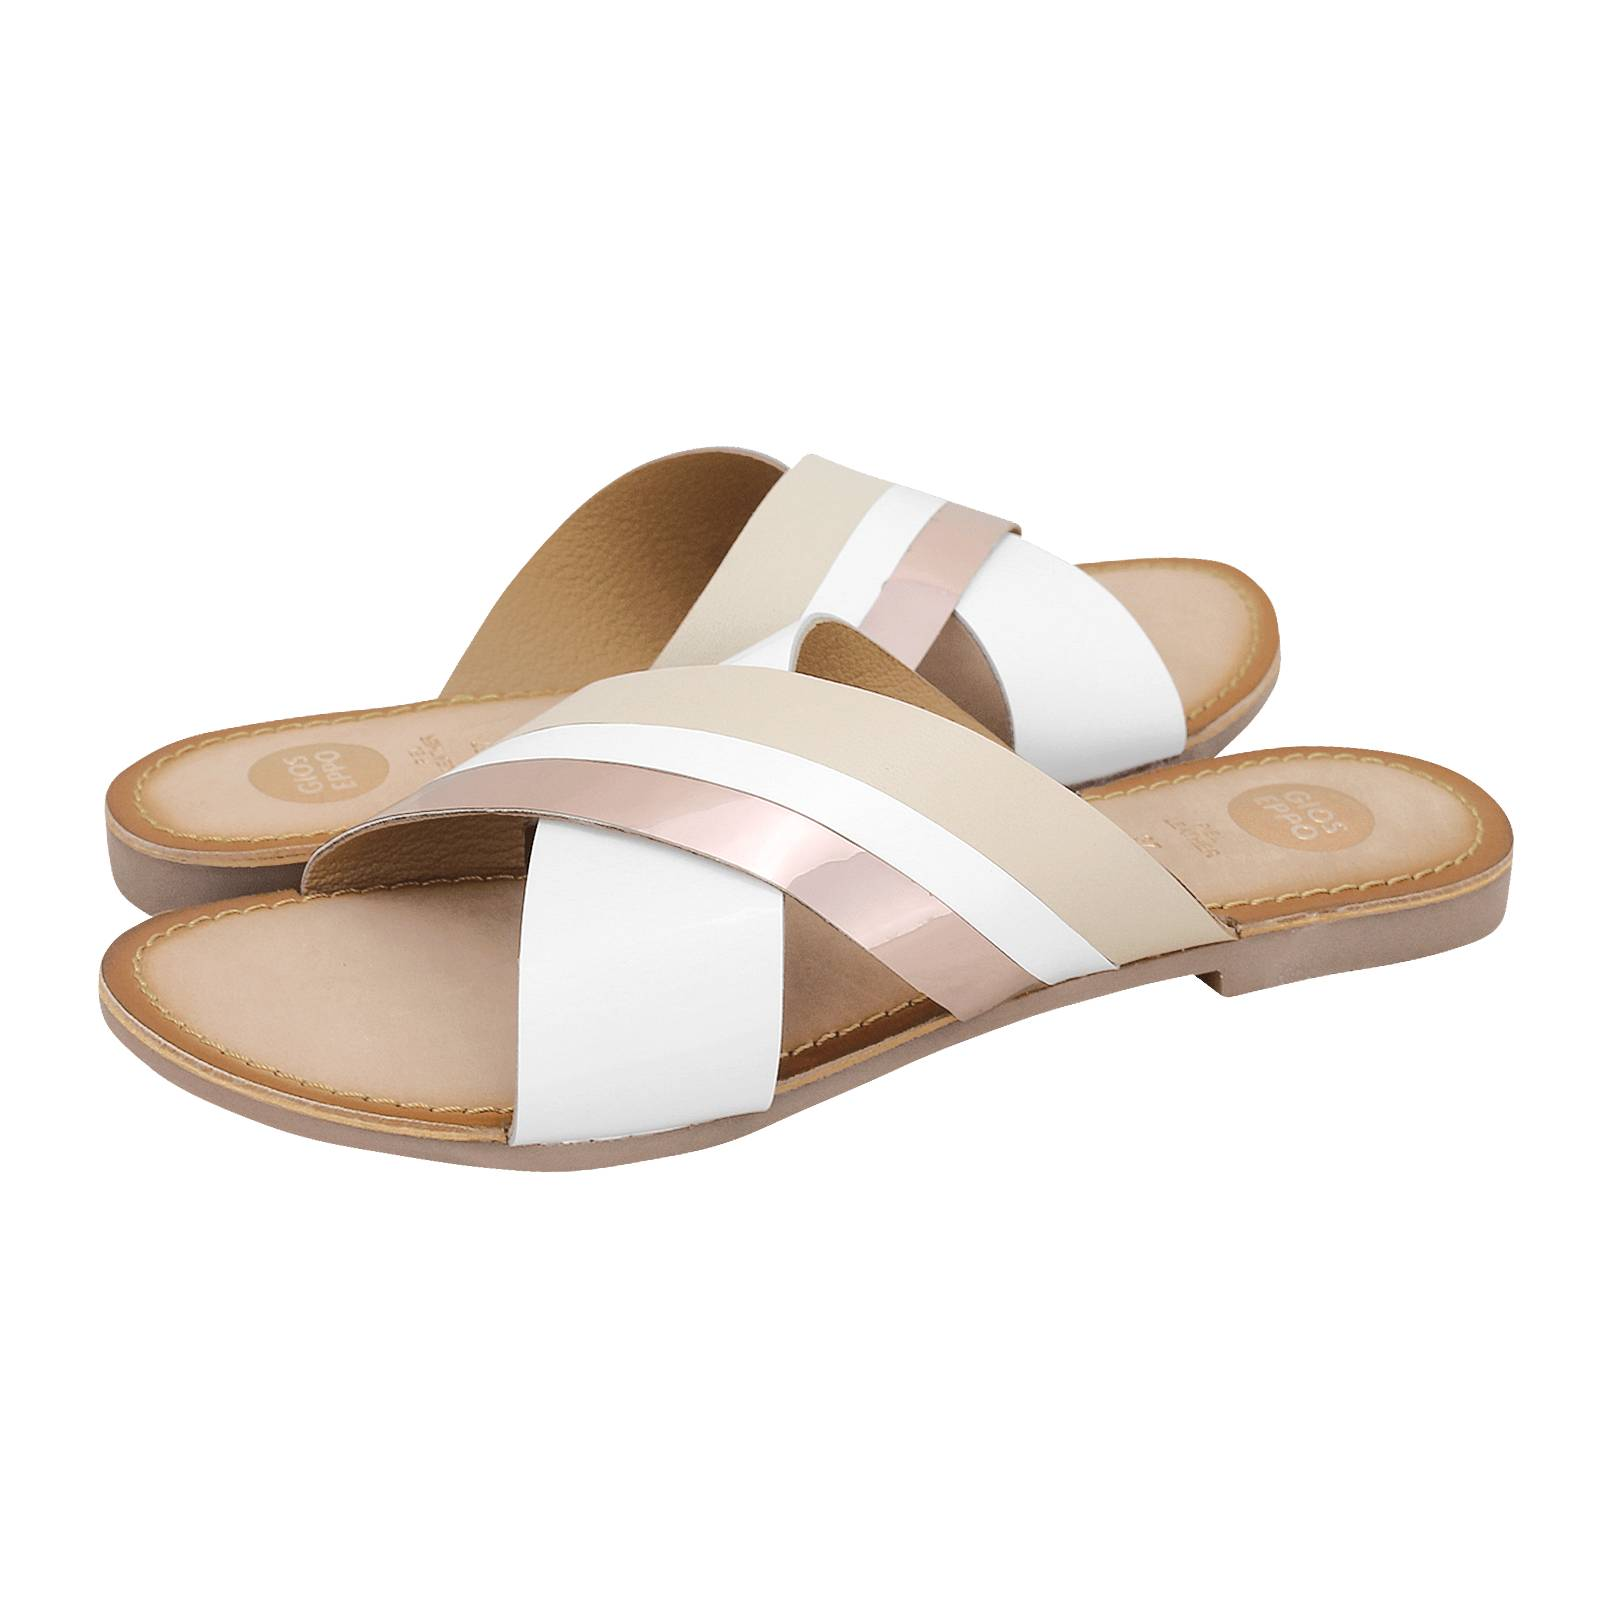 79f65df49420d1 Norken - Gioseppo Women s flat sandals made of leather and patent ...